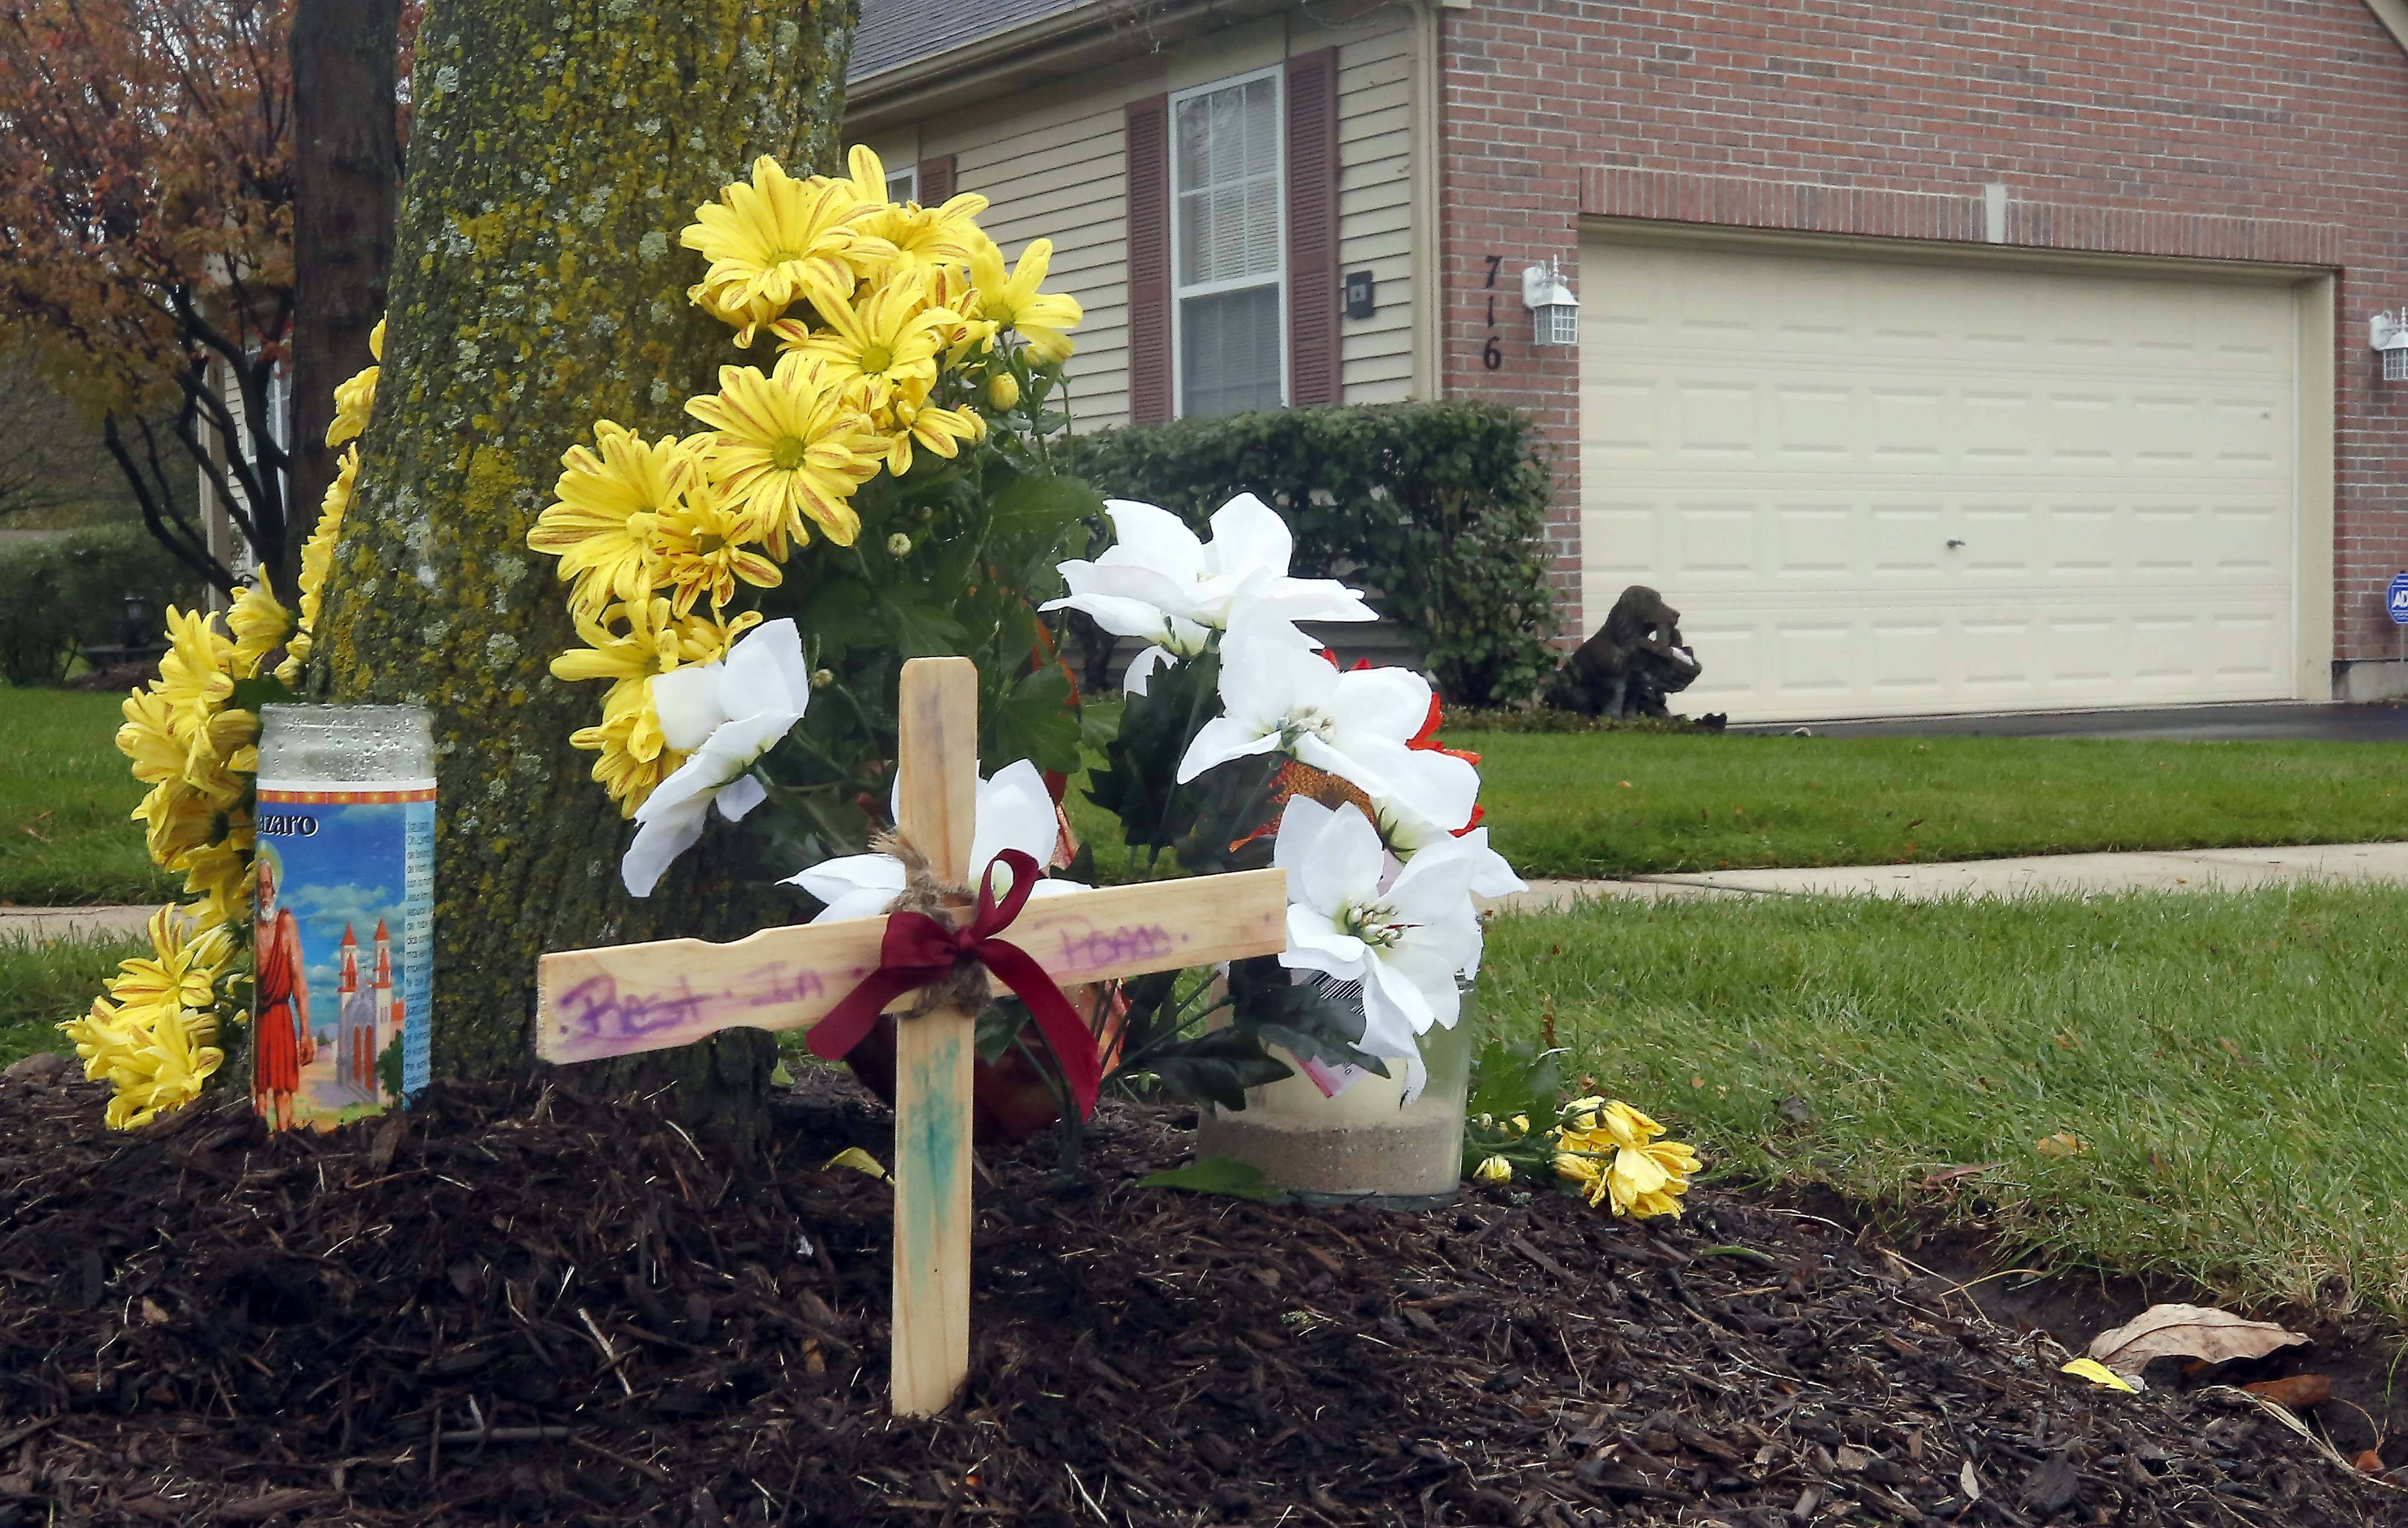 Gail Peck, the Elgin woman who police said was murdered and dismembered by her son, was the kind of neighbor who looked out for others.